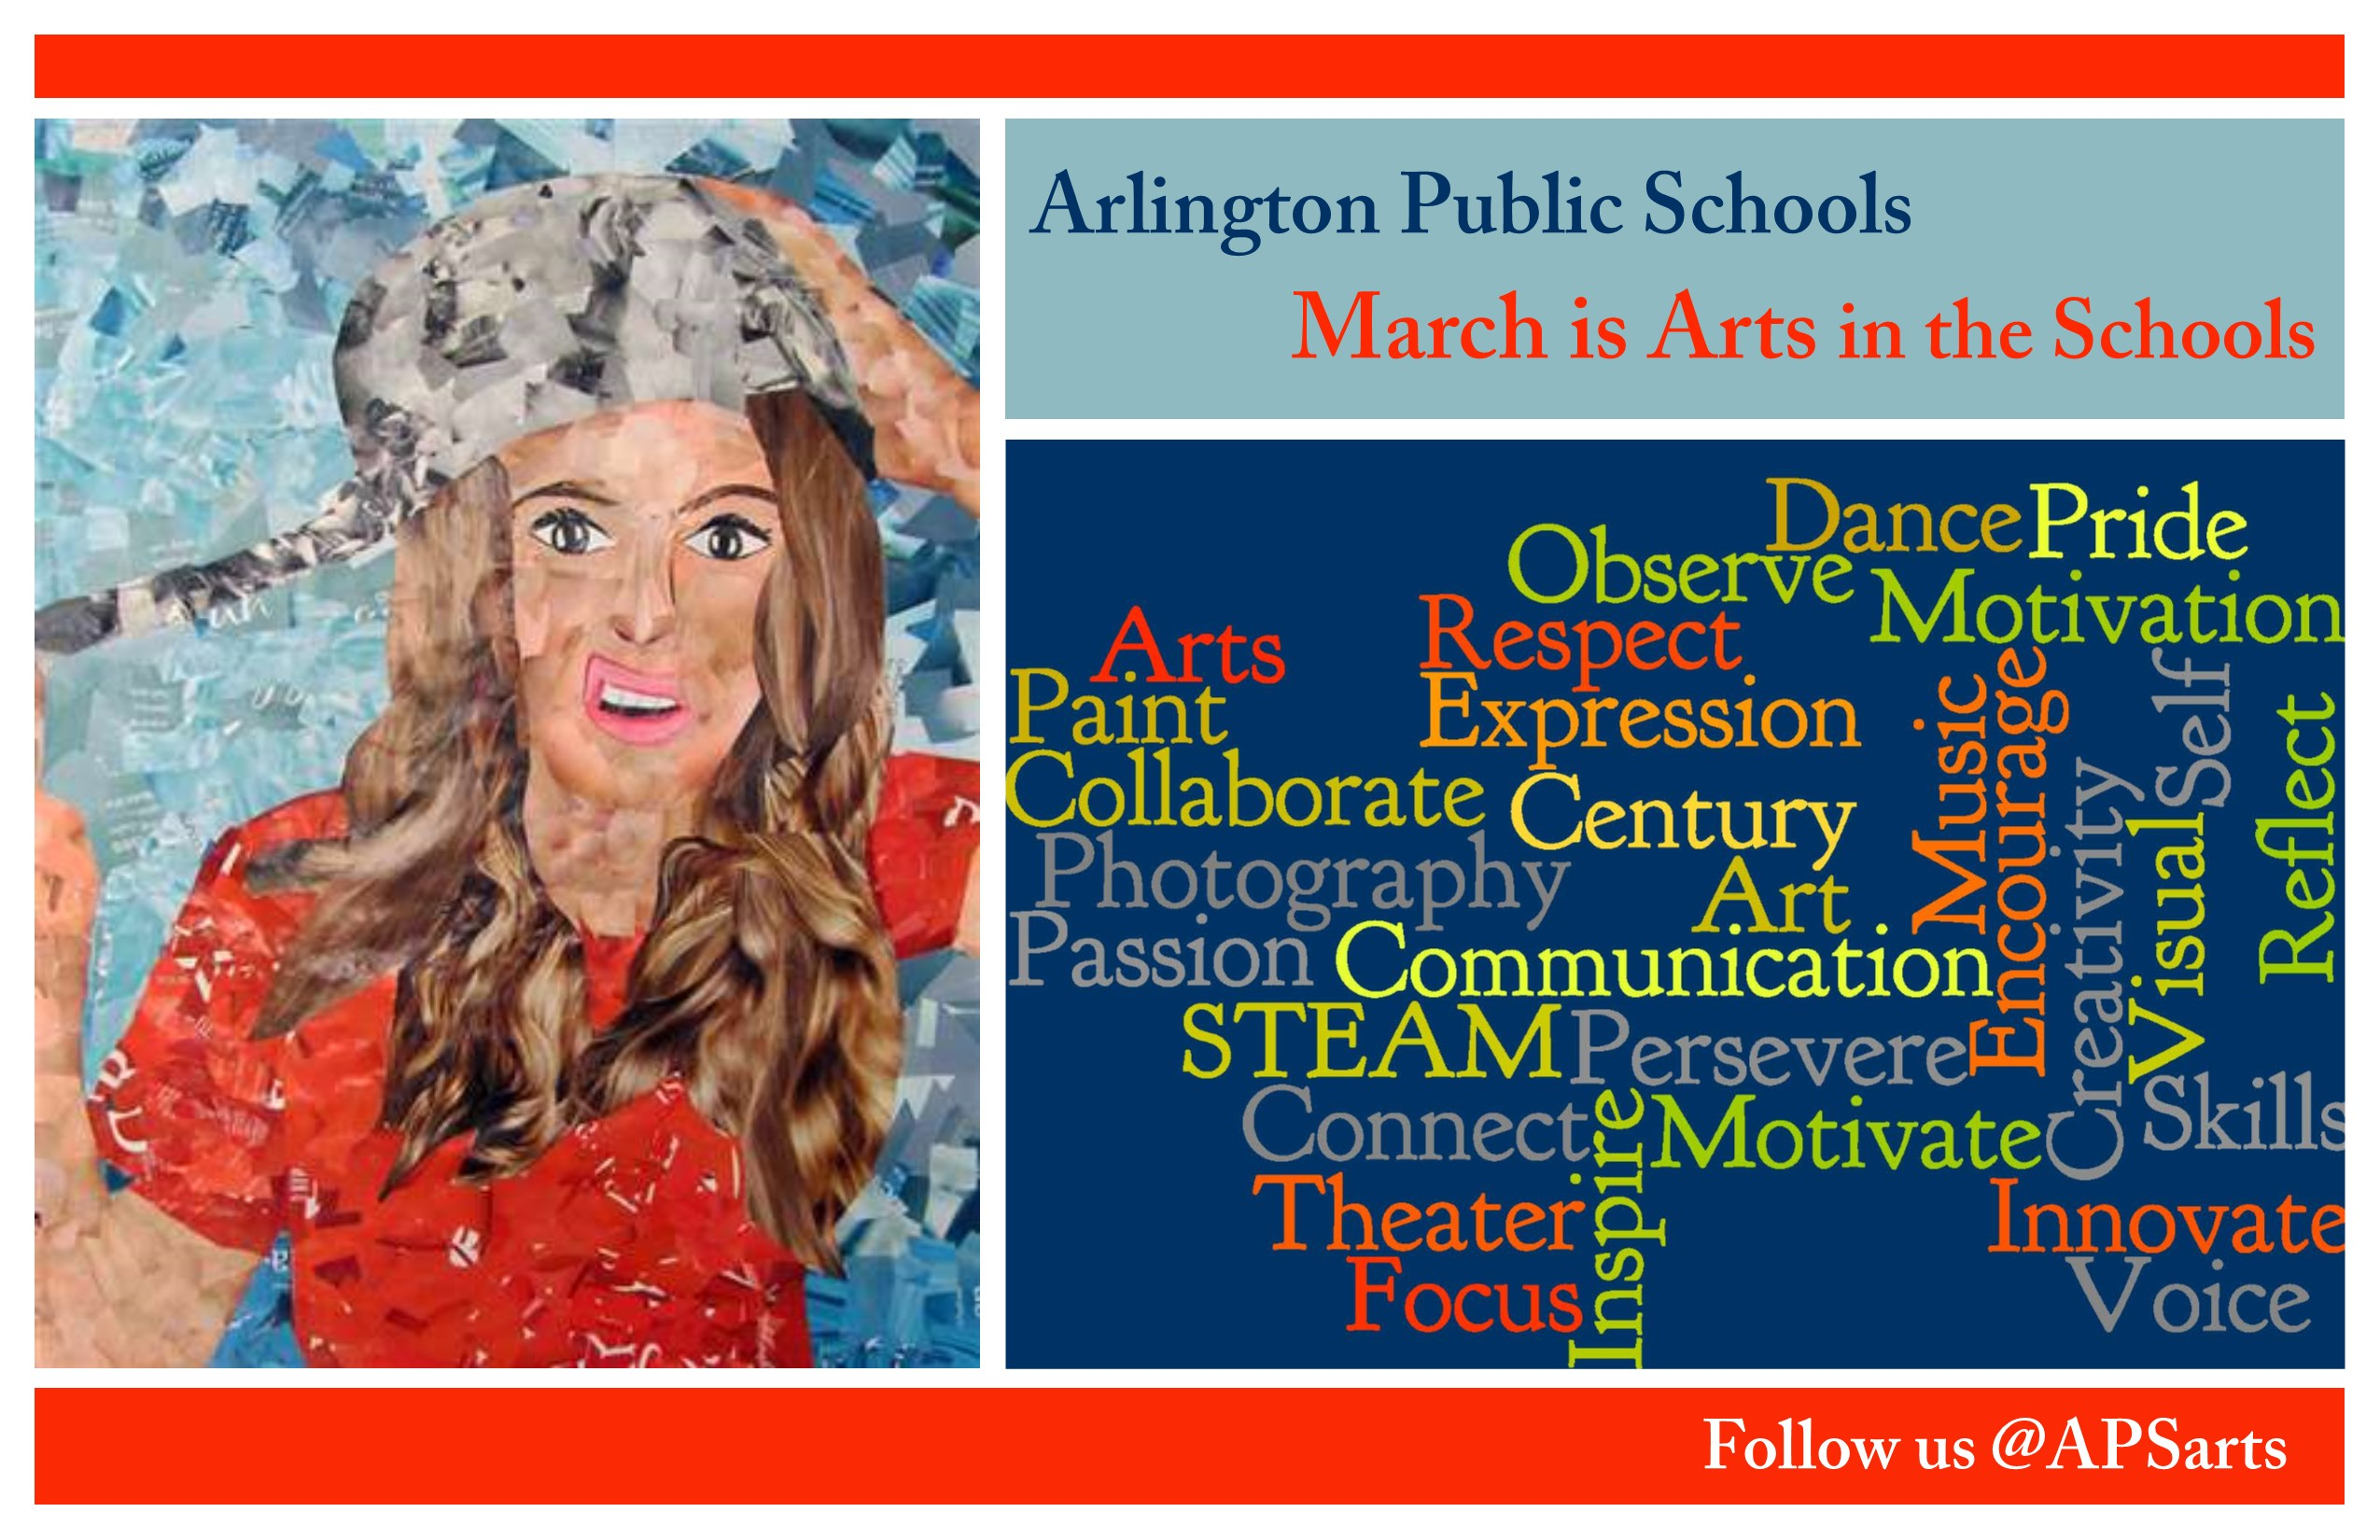 APS Celebrates Arts in the Schools Month